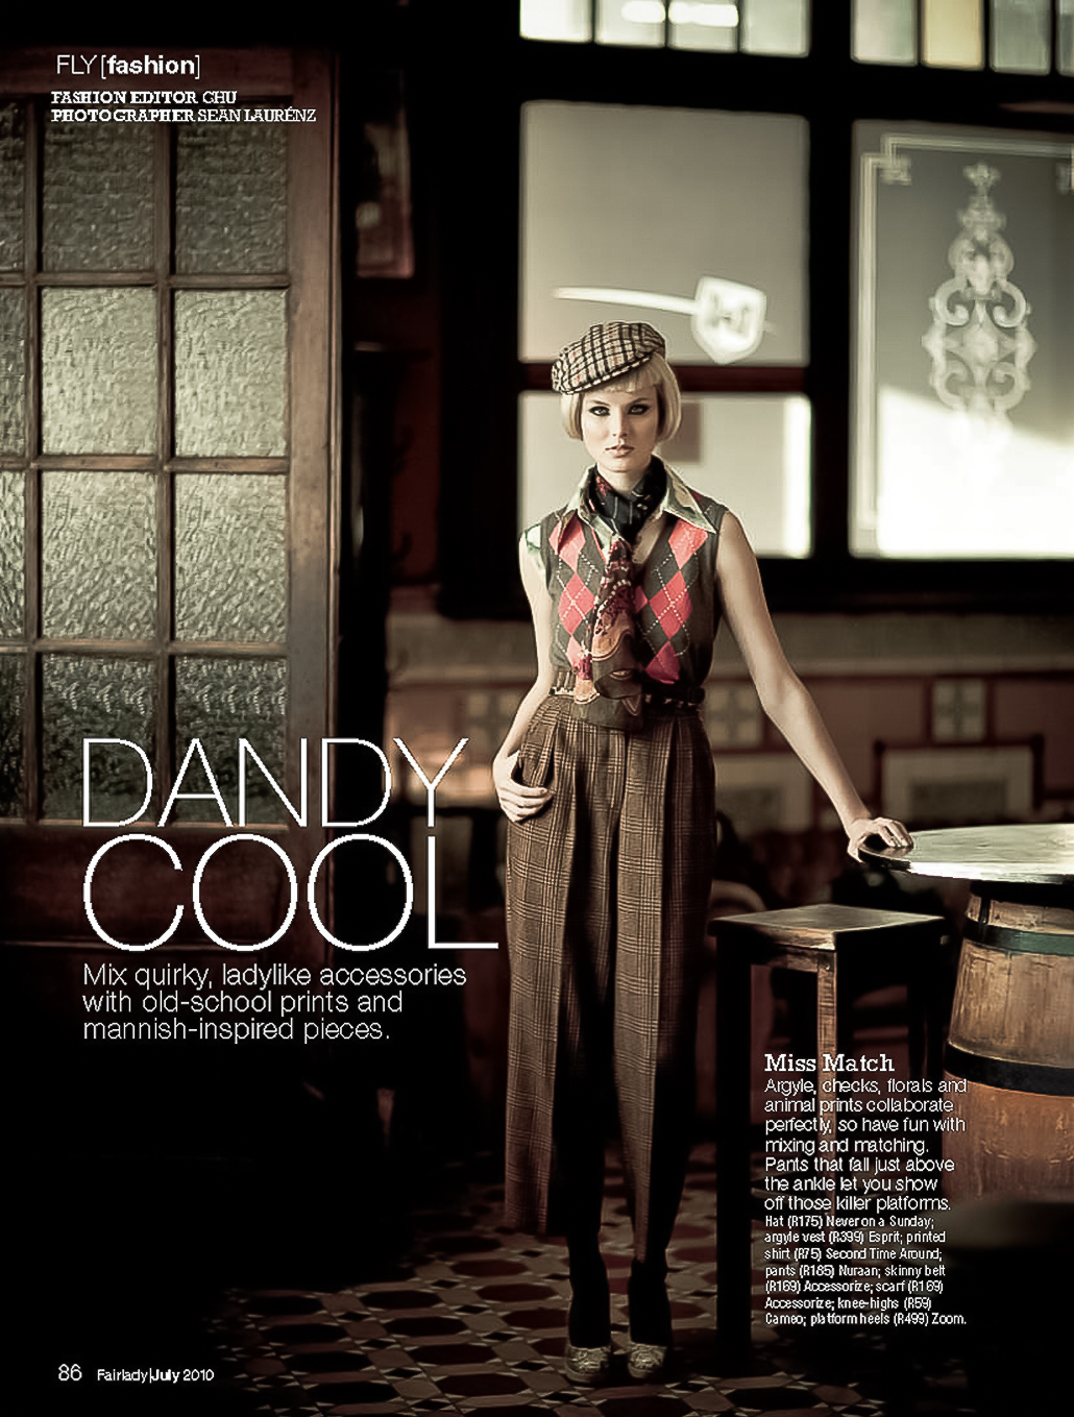 Dandy Cool